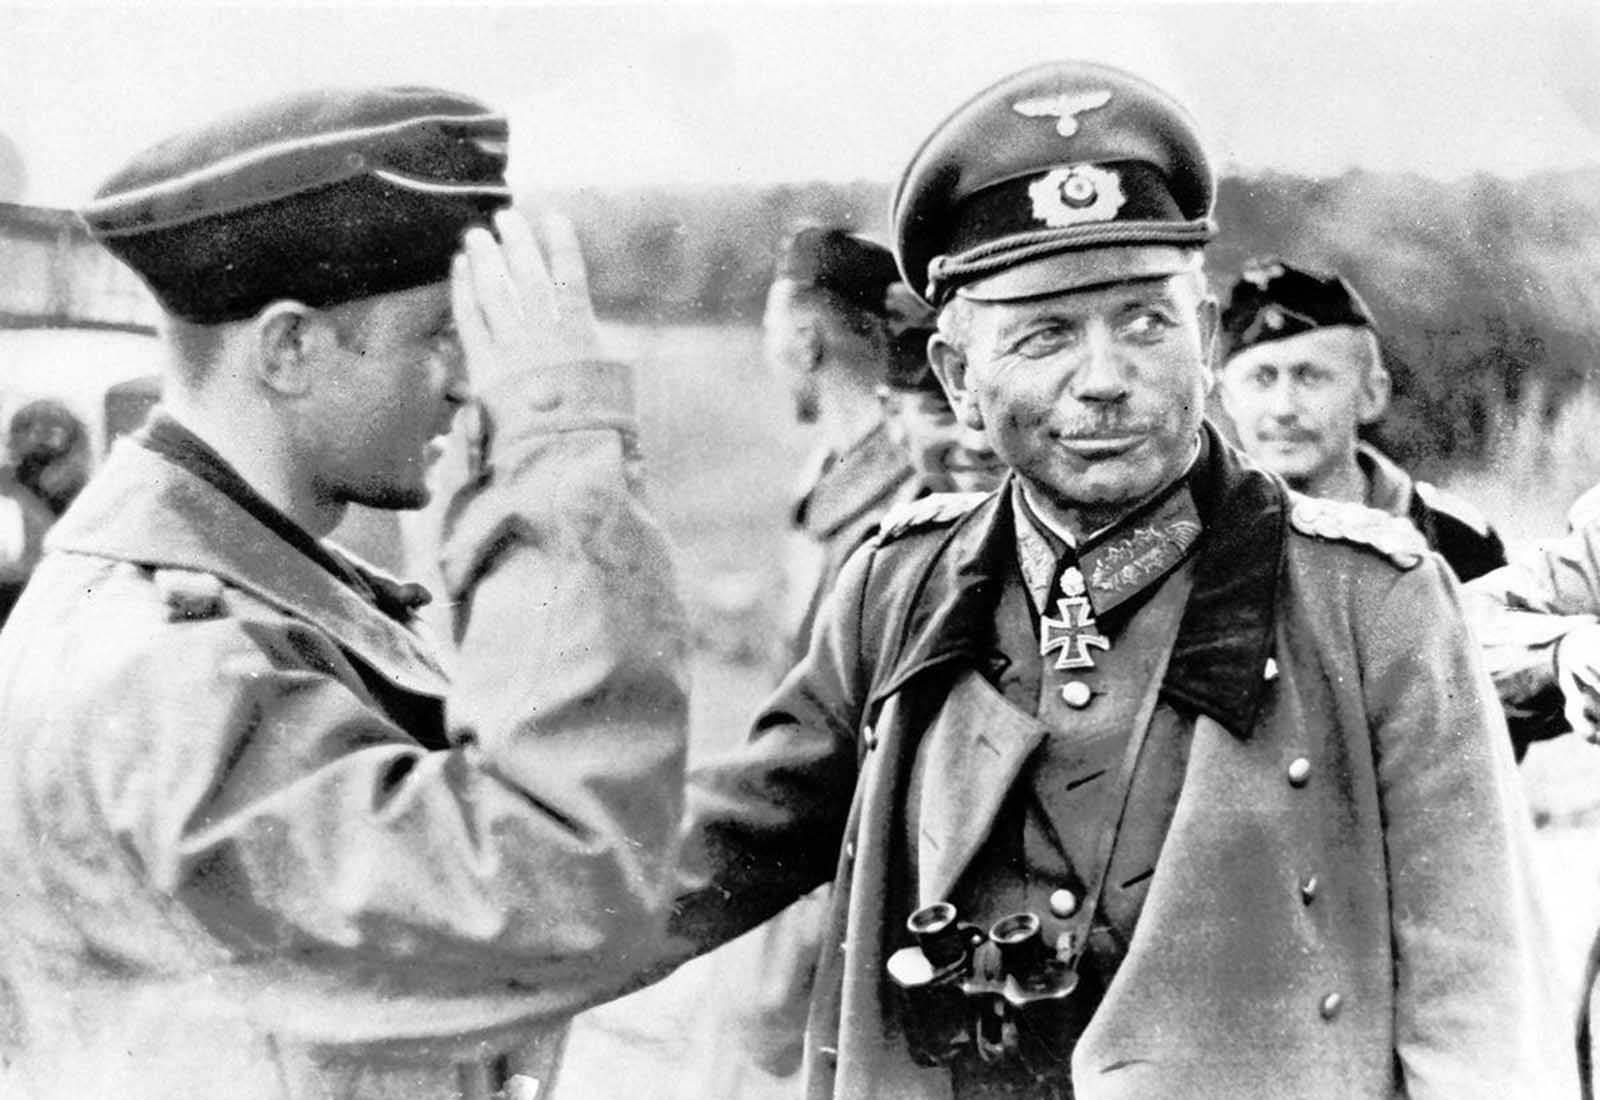 General Heinz Guderian, commander of Germany's Panzergruppe 2, chats with members of a tank crew on the Russian front, on September 3, 1941.